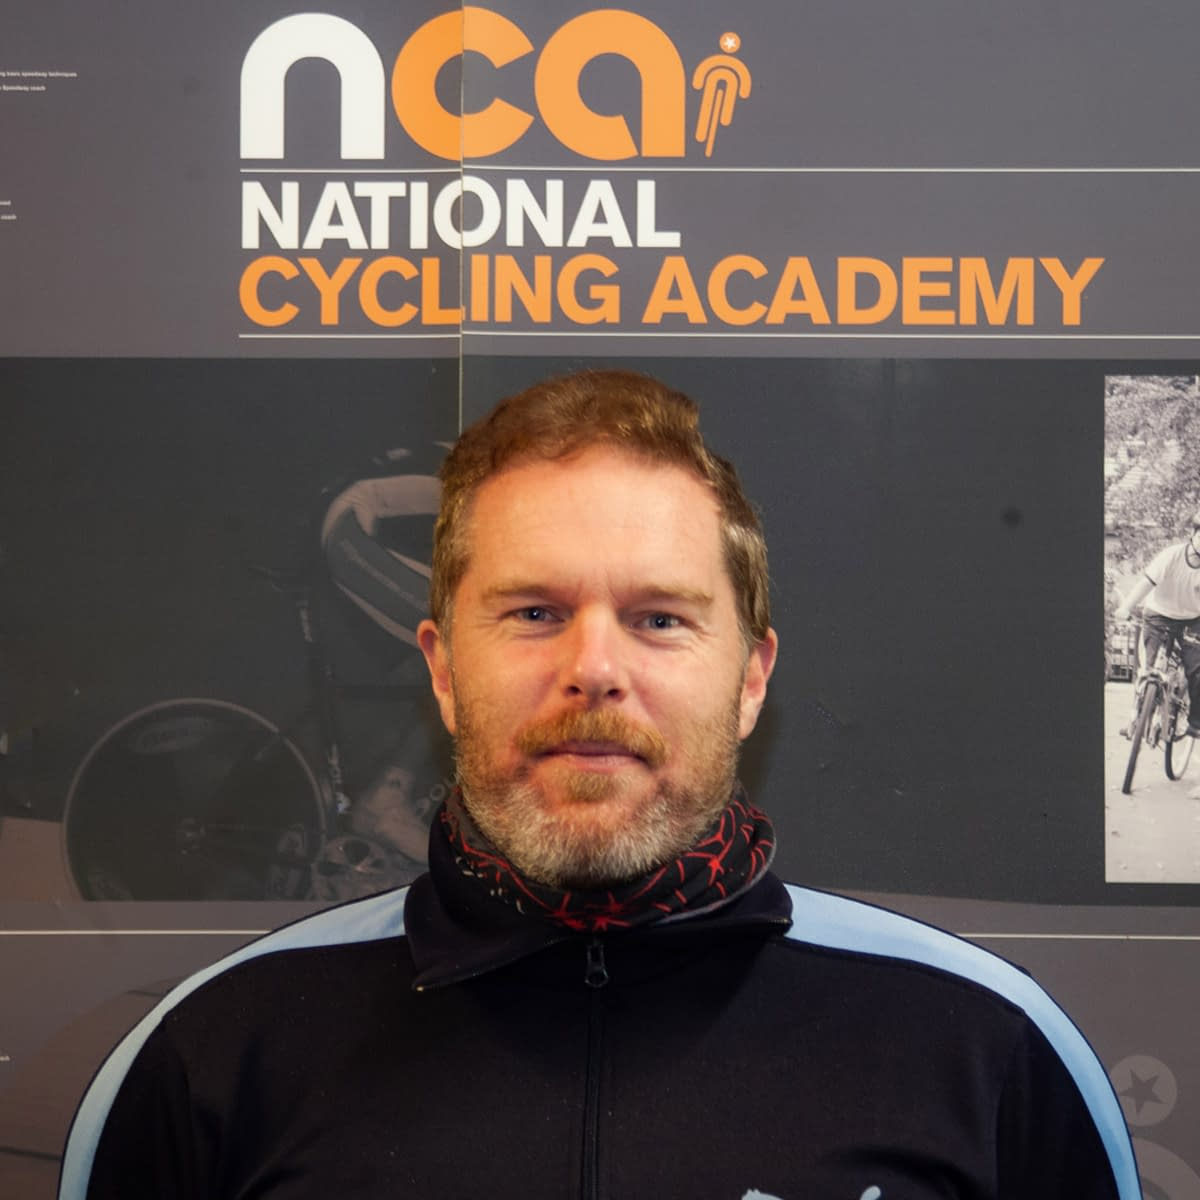 About NCA - Paul Turner